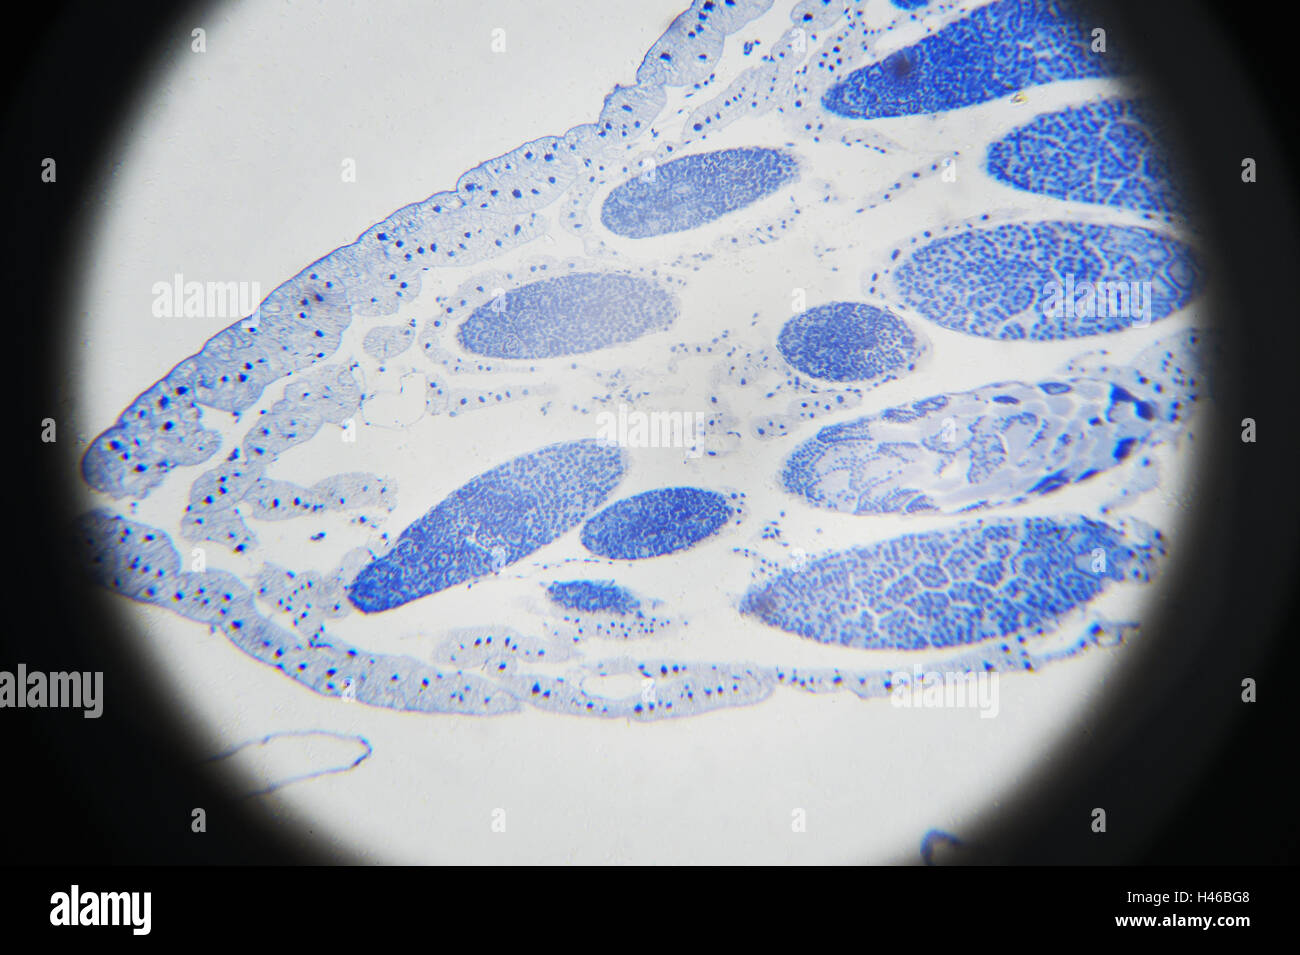 Microscopic photography. Grasshopper meiosis. - Stock Image